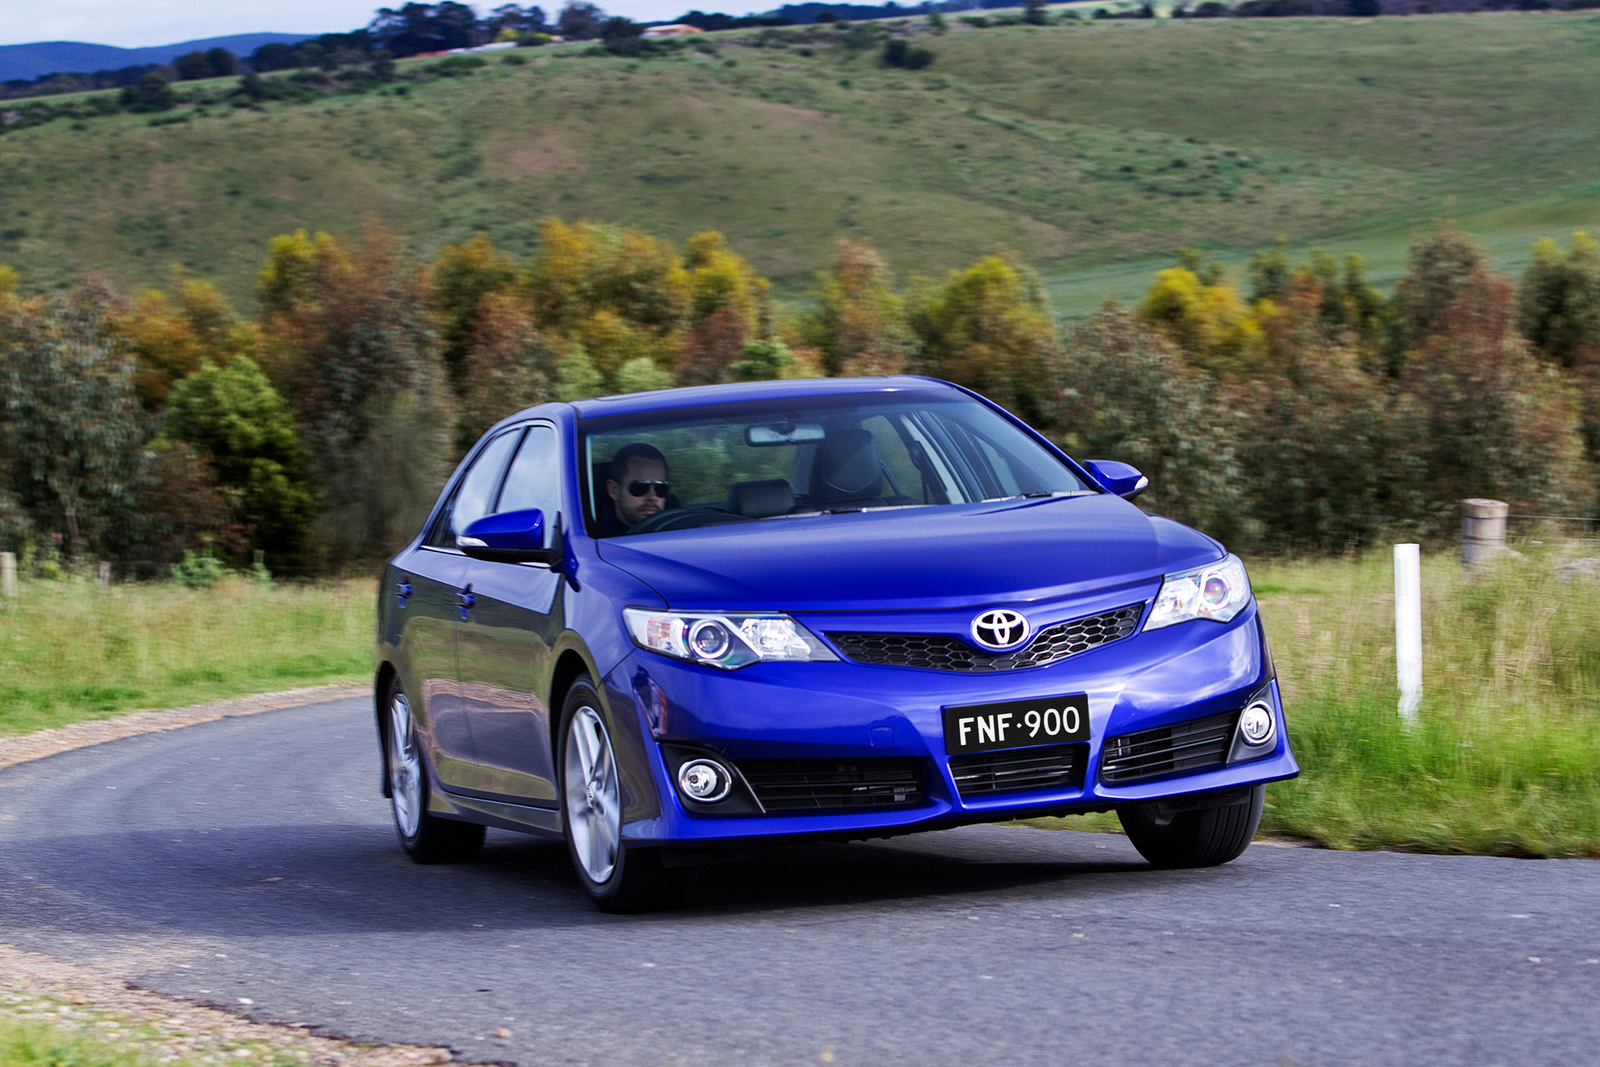 brand new toyota camry price in australia bodykit all kijang innova 2012 for unveiled autoevolution